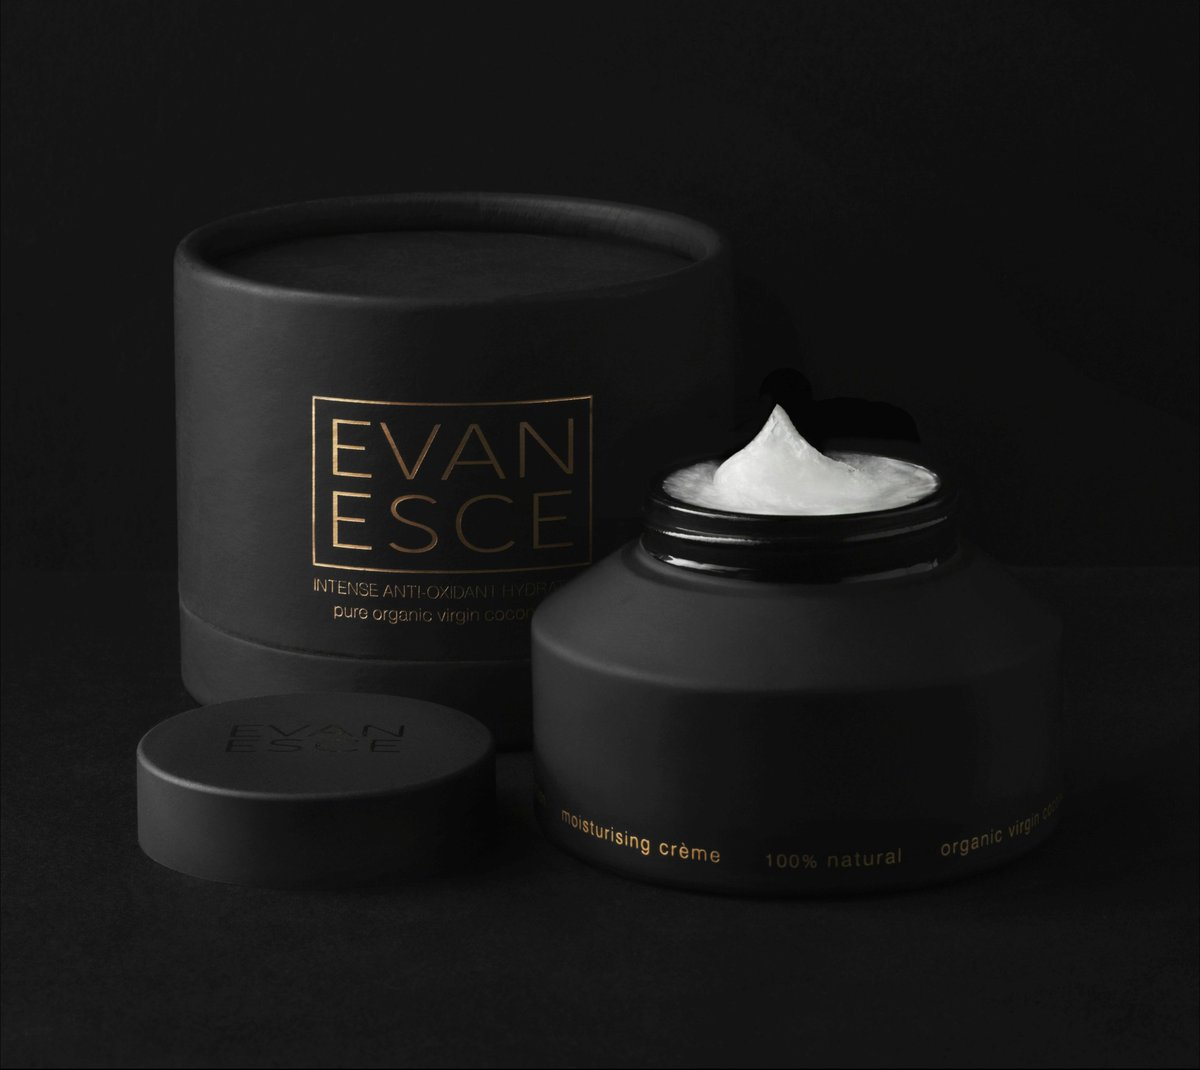 NEW #COMPETITION! #WIN EVANESCE 100% Organic Luxury #Coconut Oil Follow &amp; RT to Enter #PureLuxury The worlds finest #Coconut Oil!<br>http://pic.twitter.com/ZEULt3KtUj